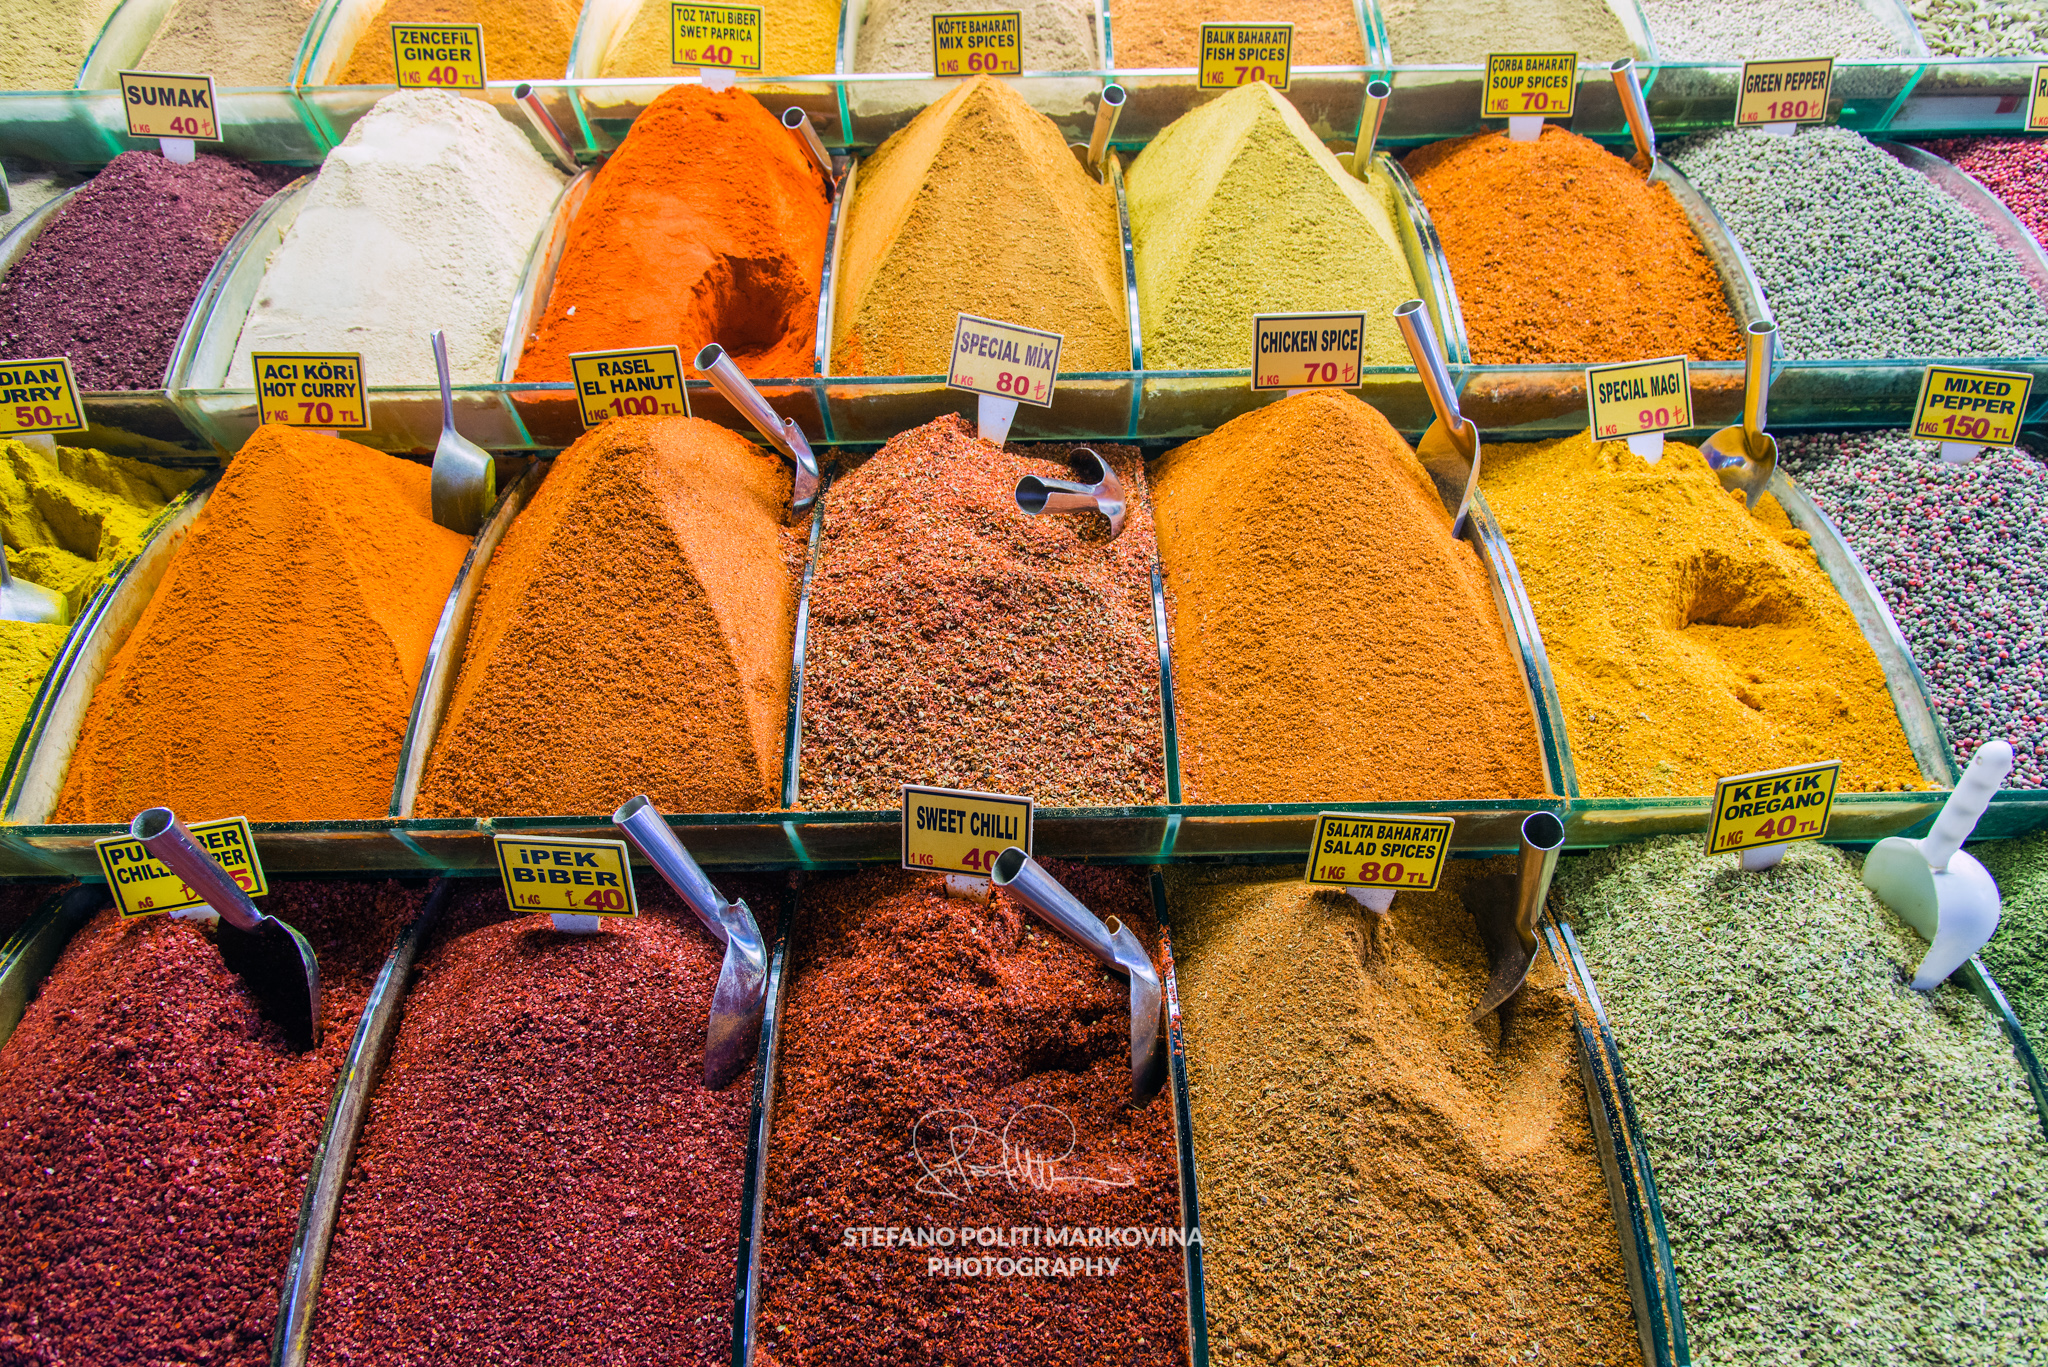 How to photograph markets